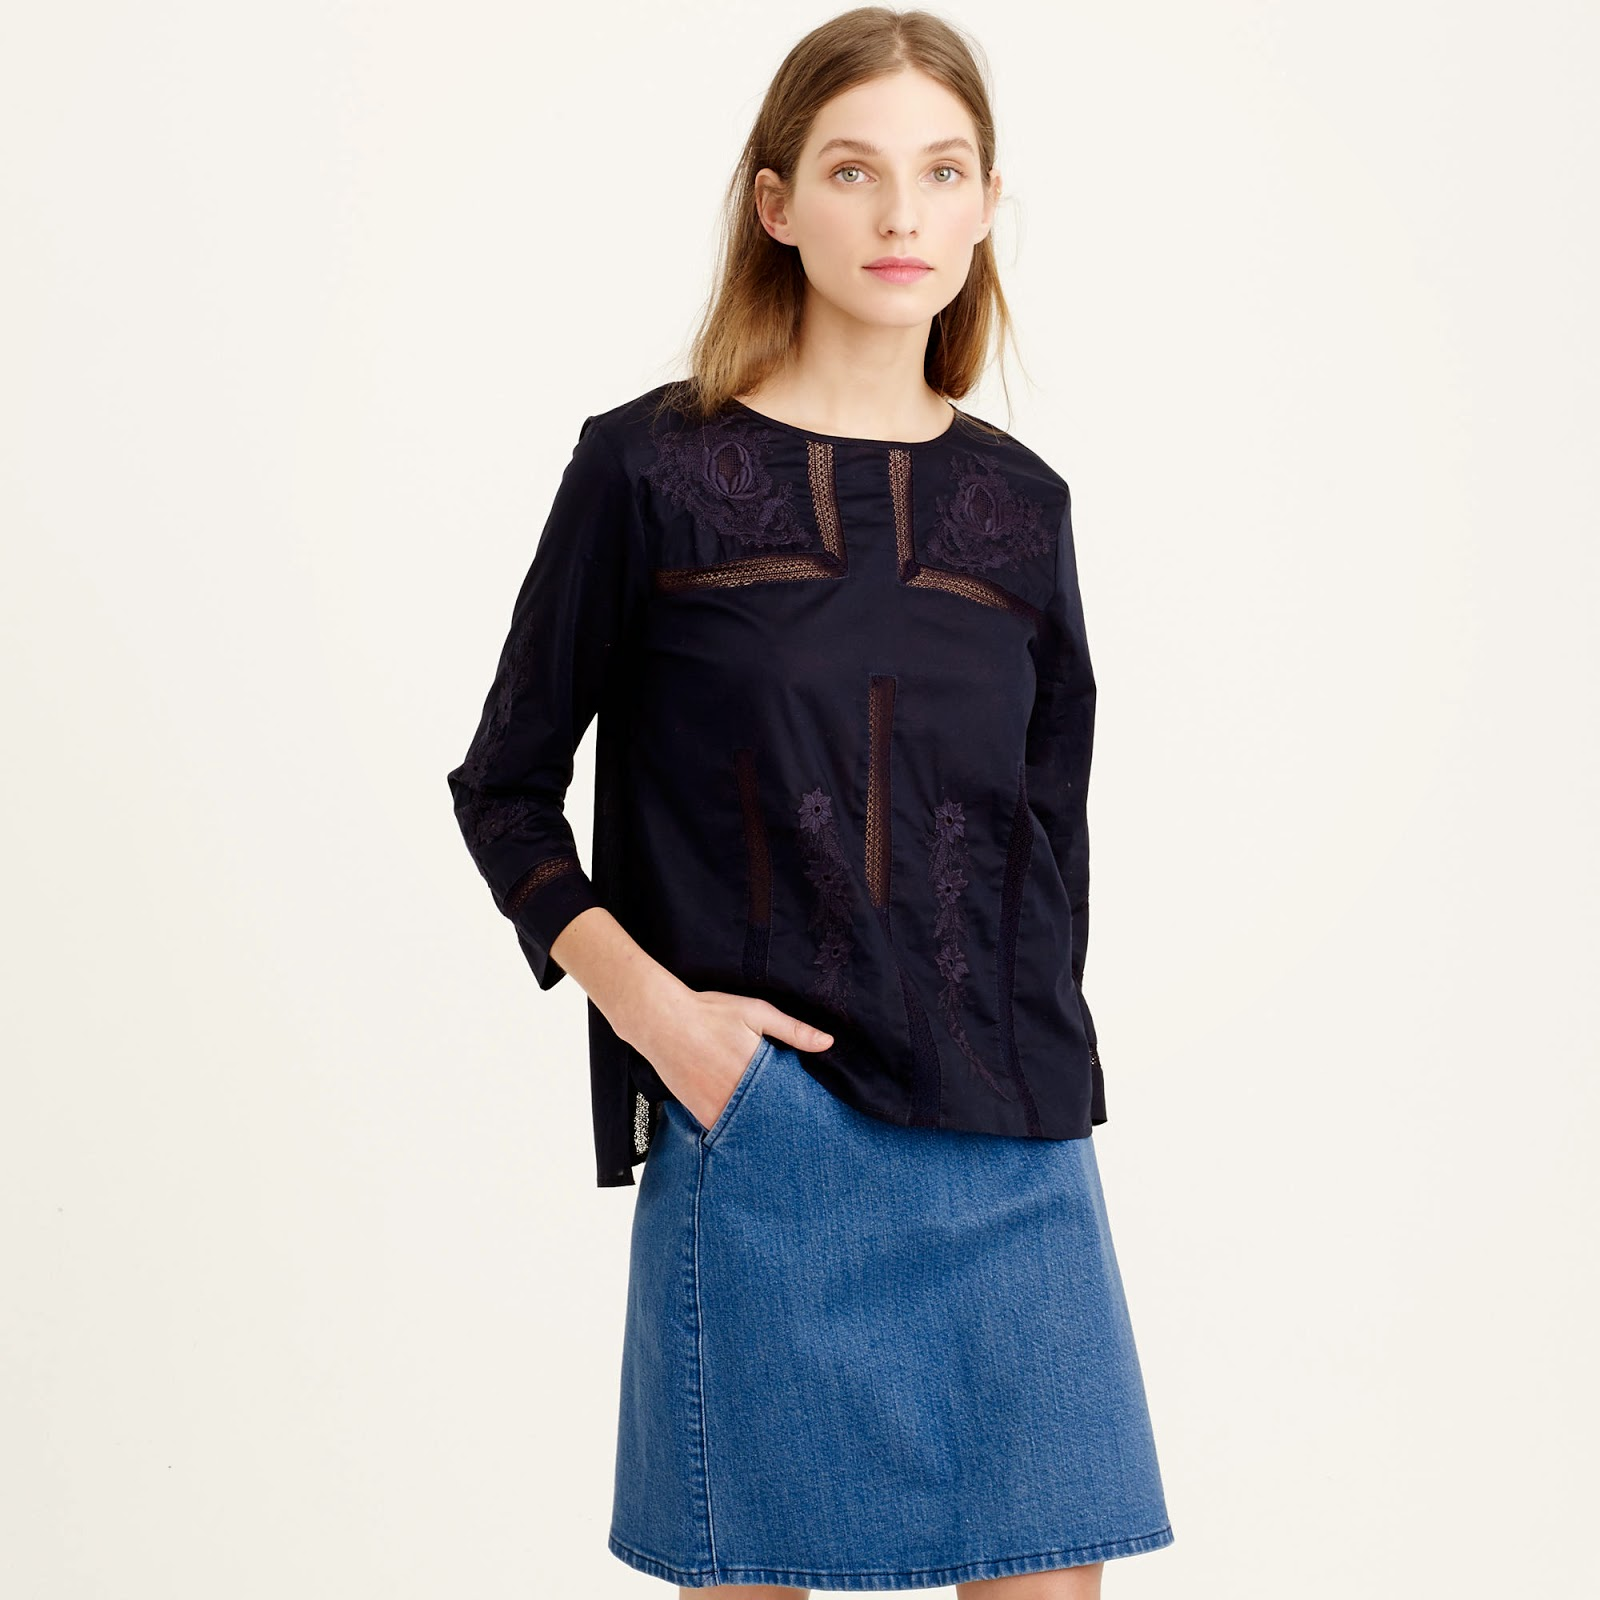 j crew embroidered lace top on sale